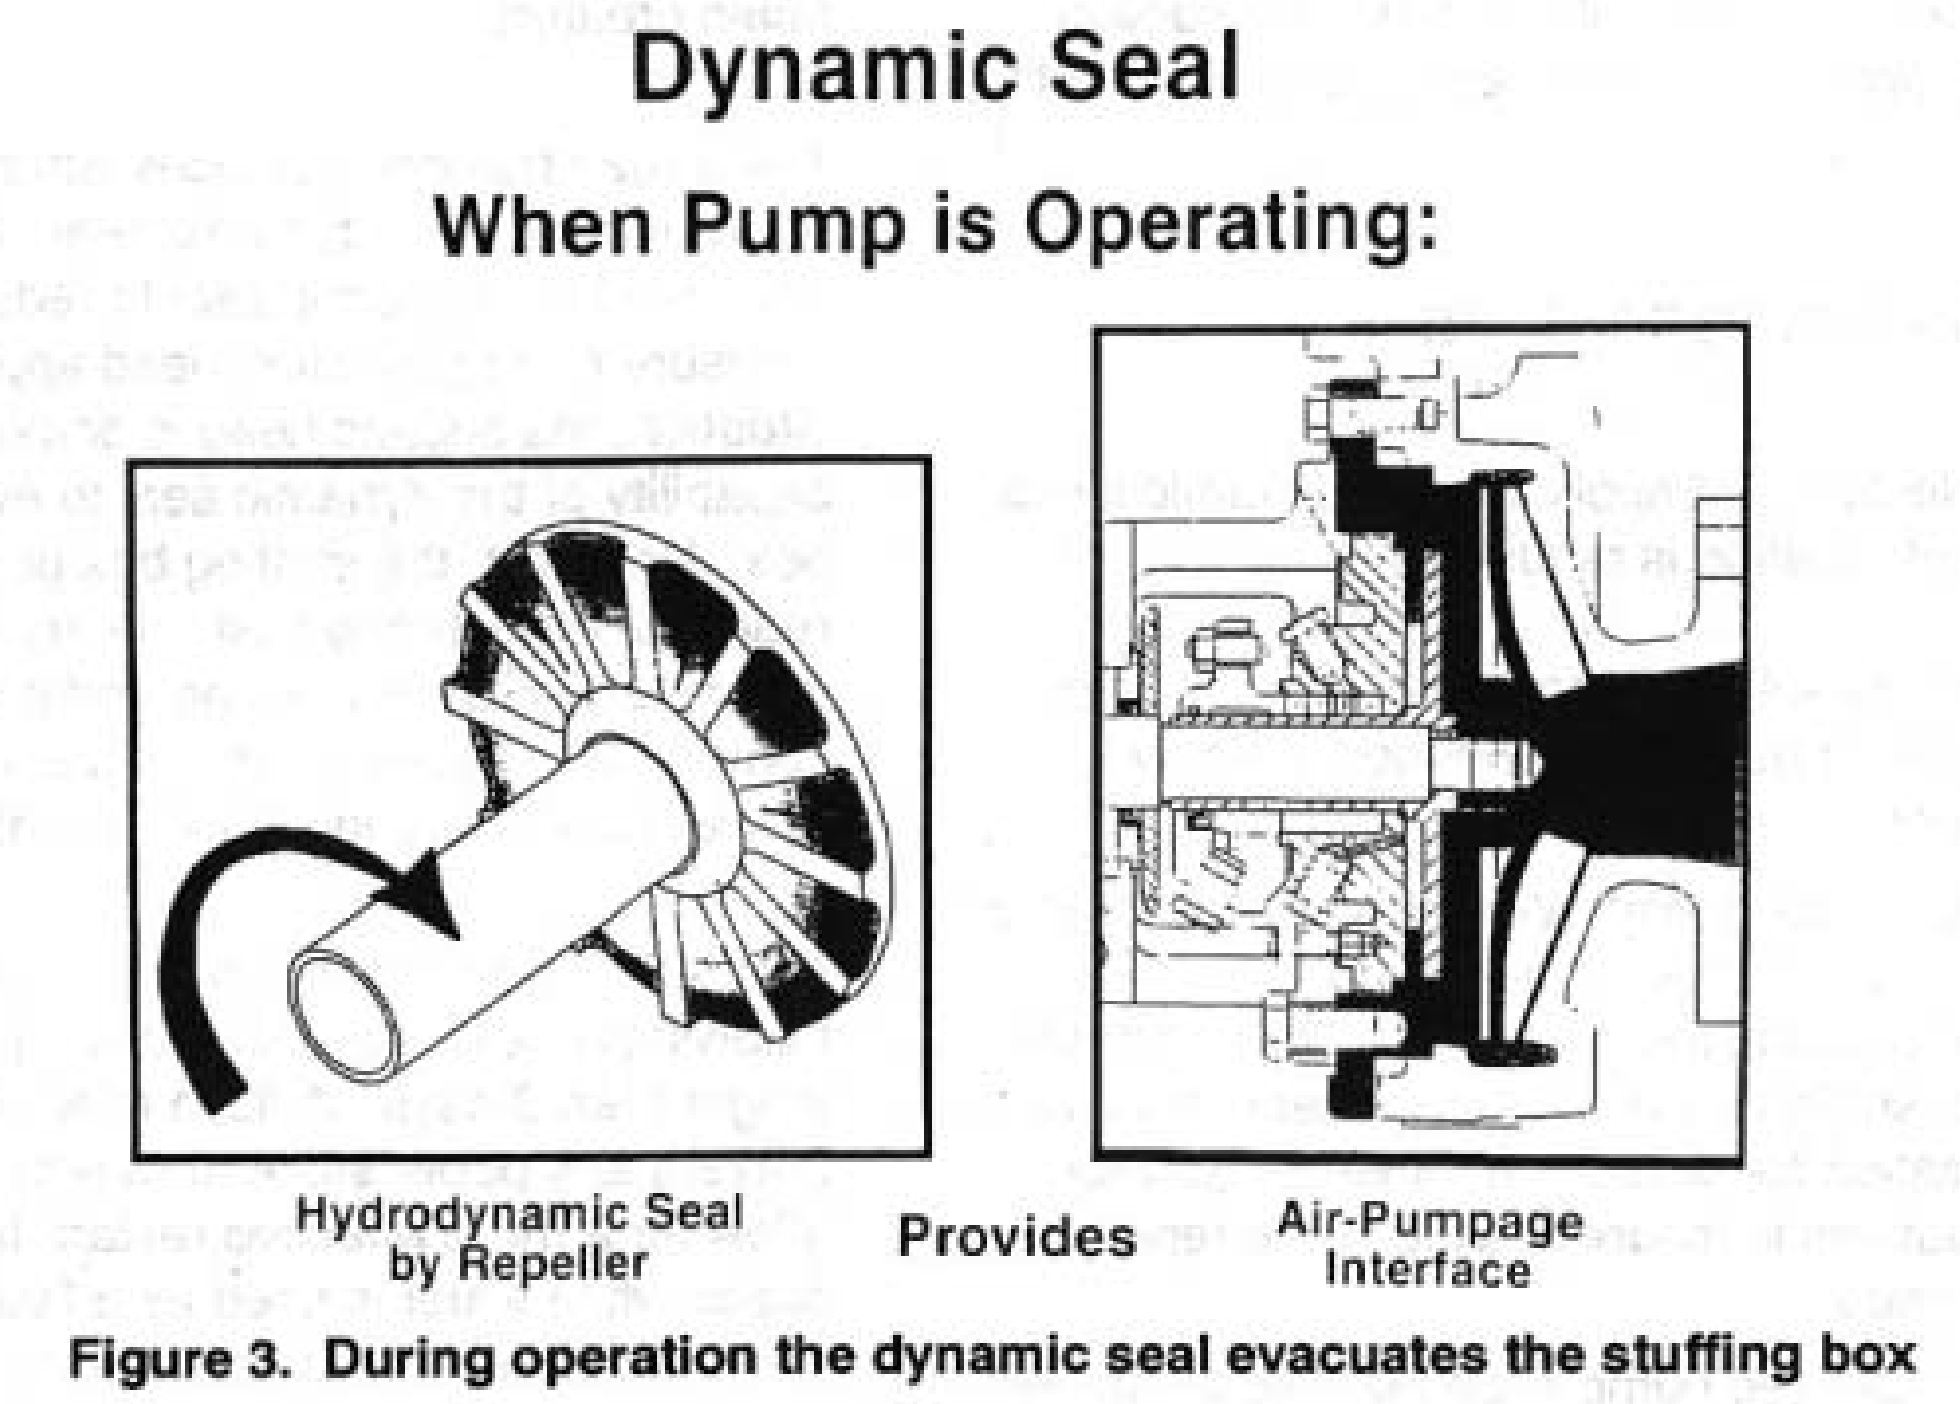 Dynamic Seal when Pump is Operating - figure 3